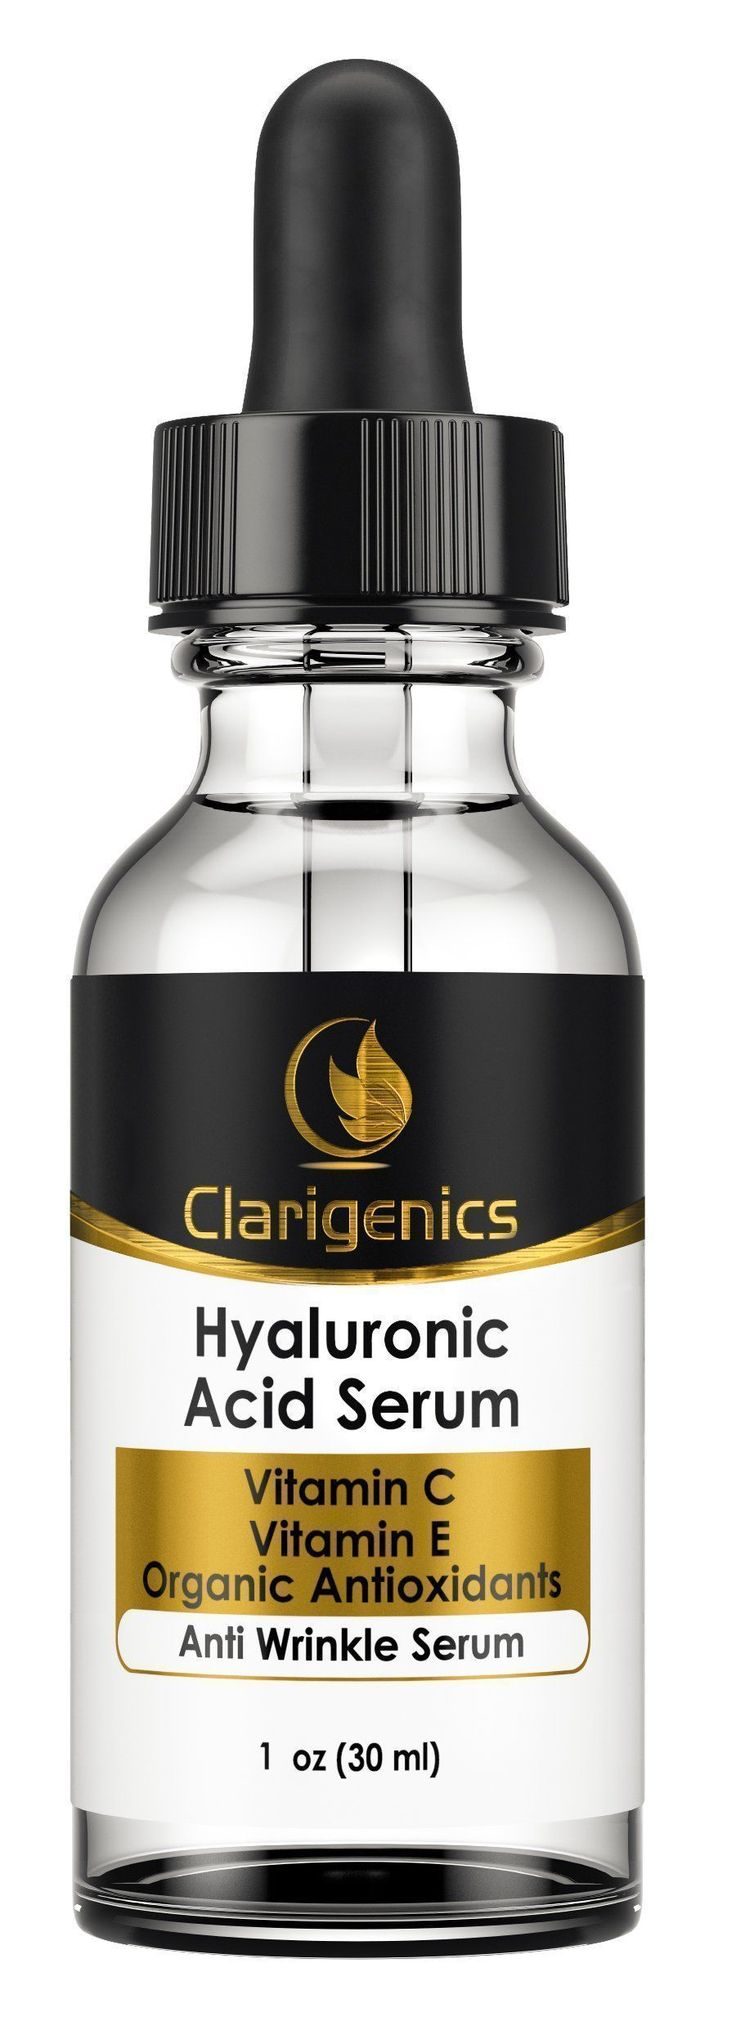 RESEARCH!!! -- Best Natural Face Moisturizer For Dry, Oily, & Sensitive Skin - Hyaluronic Acid Serum with Vitamin C & Organic Antioxidants Binds More Moisture Than Typical Anti Aging Cream - Paraben Free Moisturizer & Wrinkle Remover Is Great for Face, Eyes, & Neck #facecreamsforoilyskin #facemoiturizer #moisturizerforoilyskin #skinmoisturizer